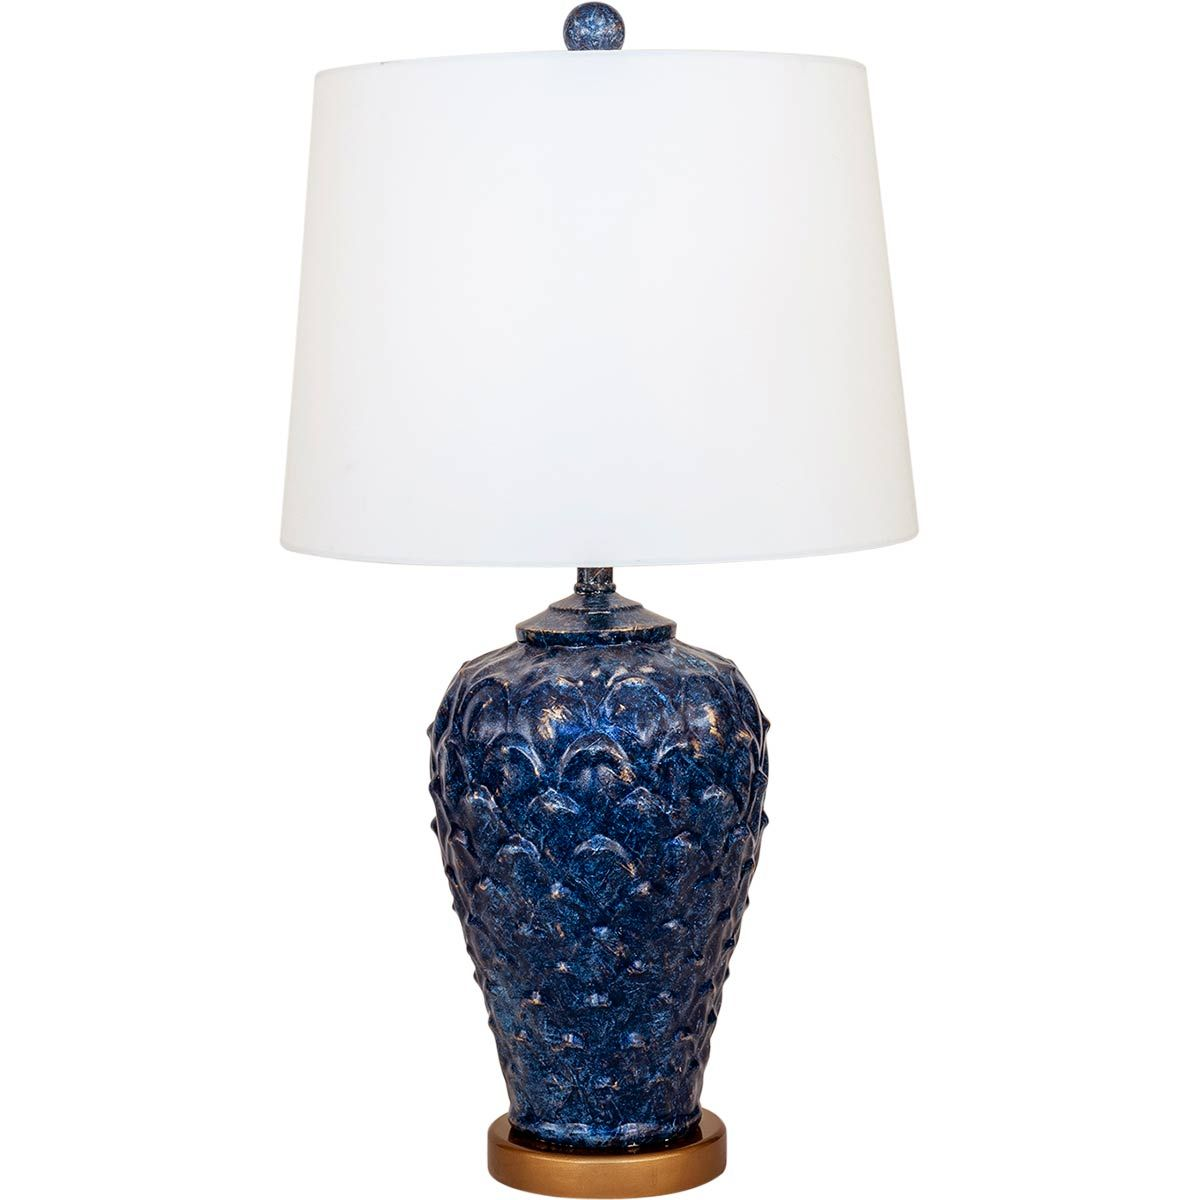 Sonoma Feathers Table Lamp